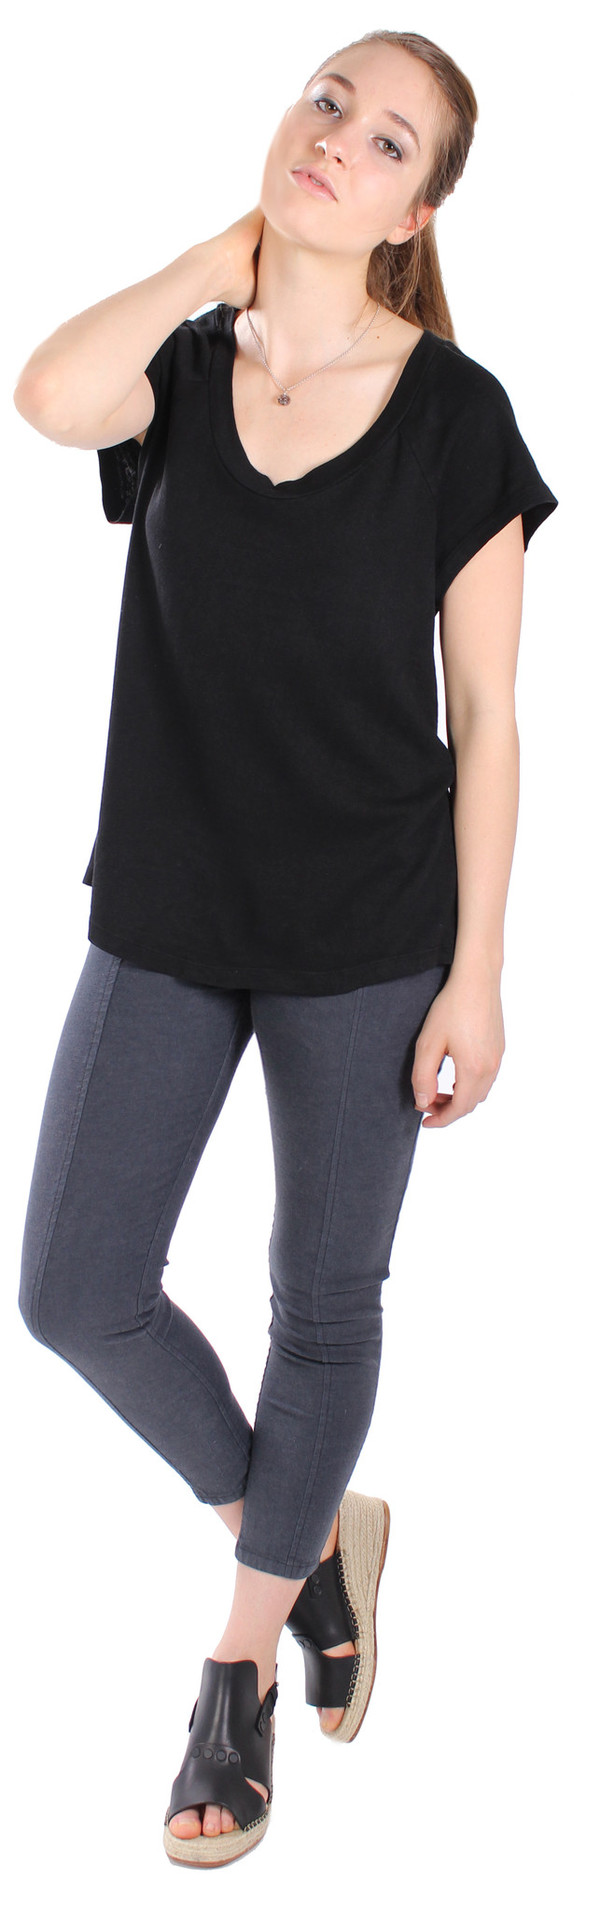 Prairie Underground Breezy Top in Black